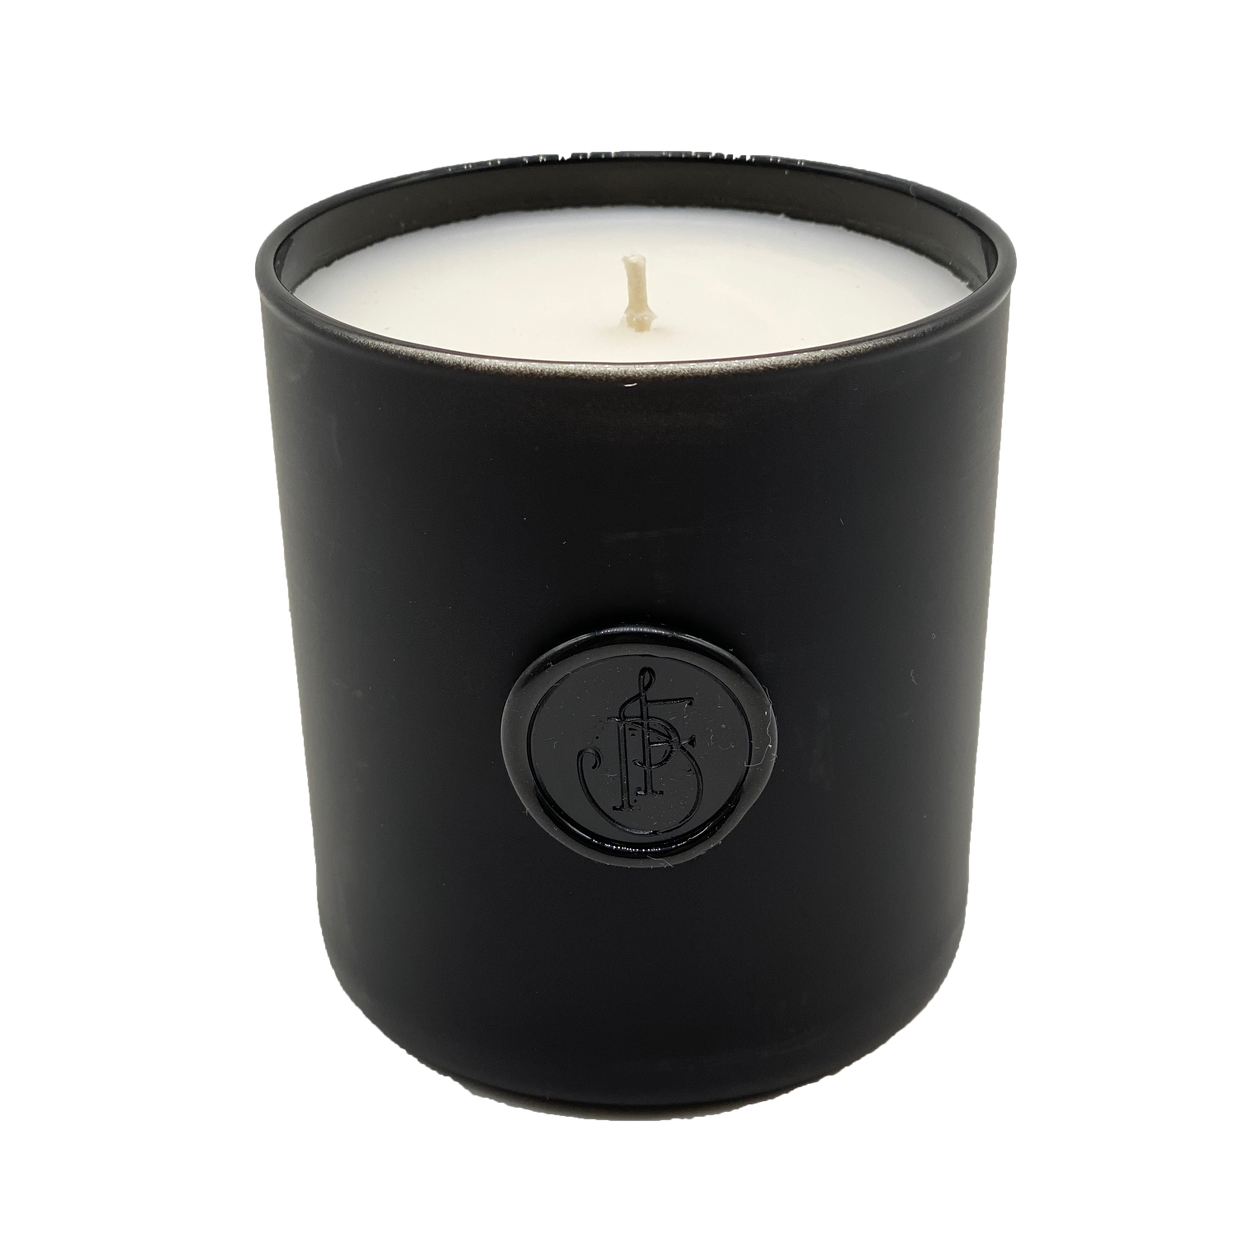 Fritz Porter Collection Candle: Cigar Factory